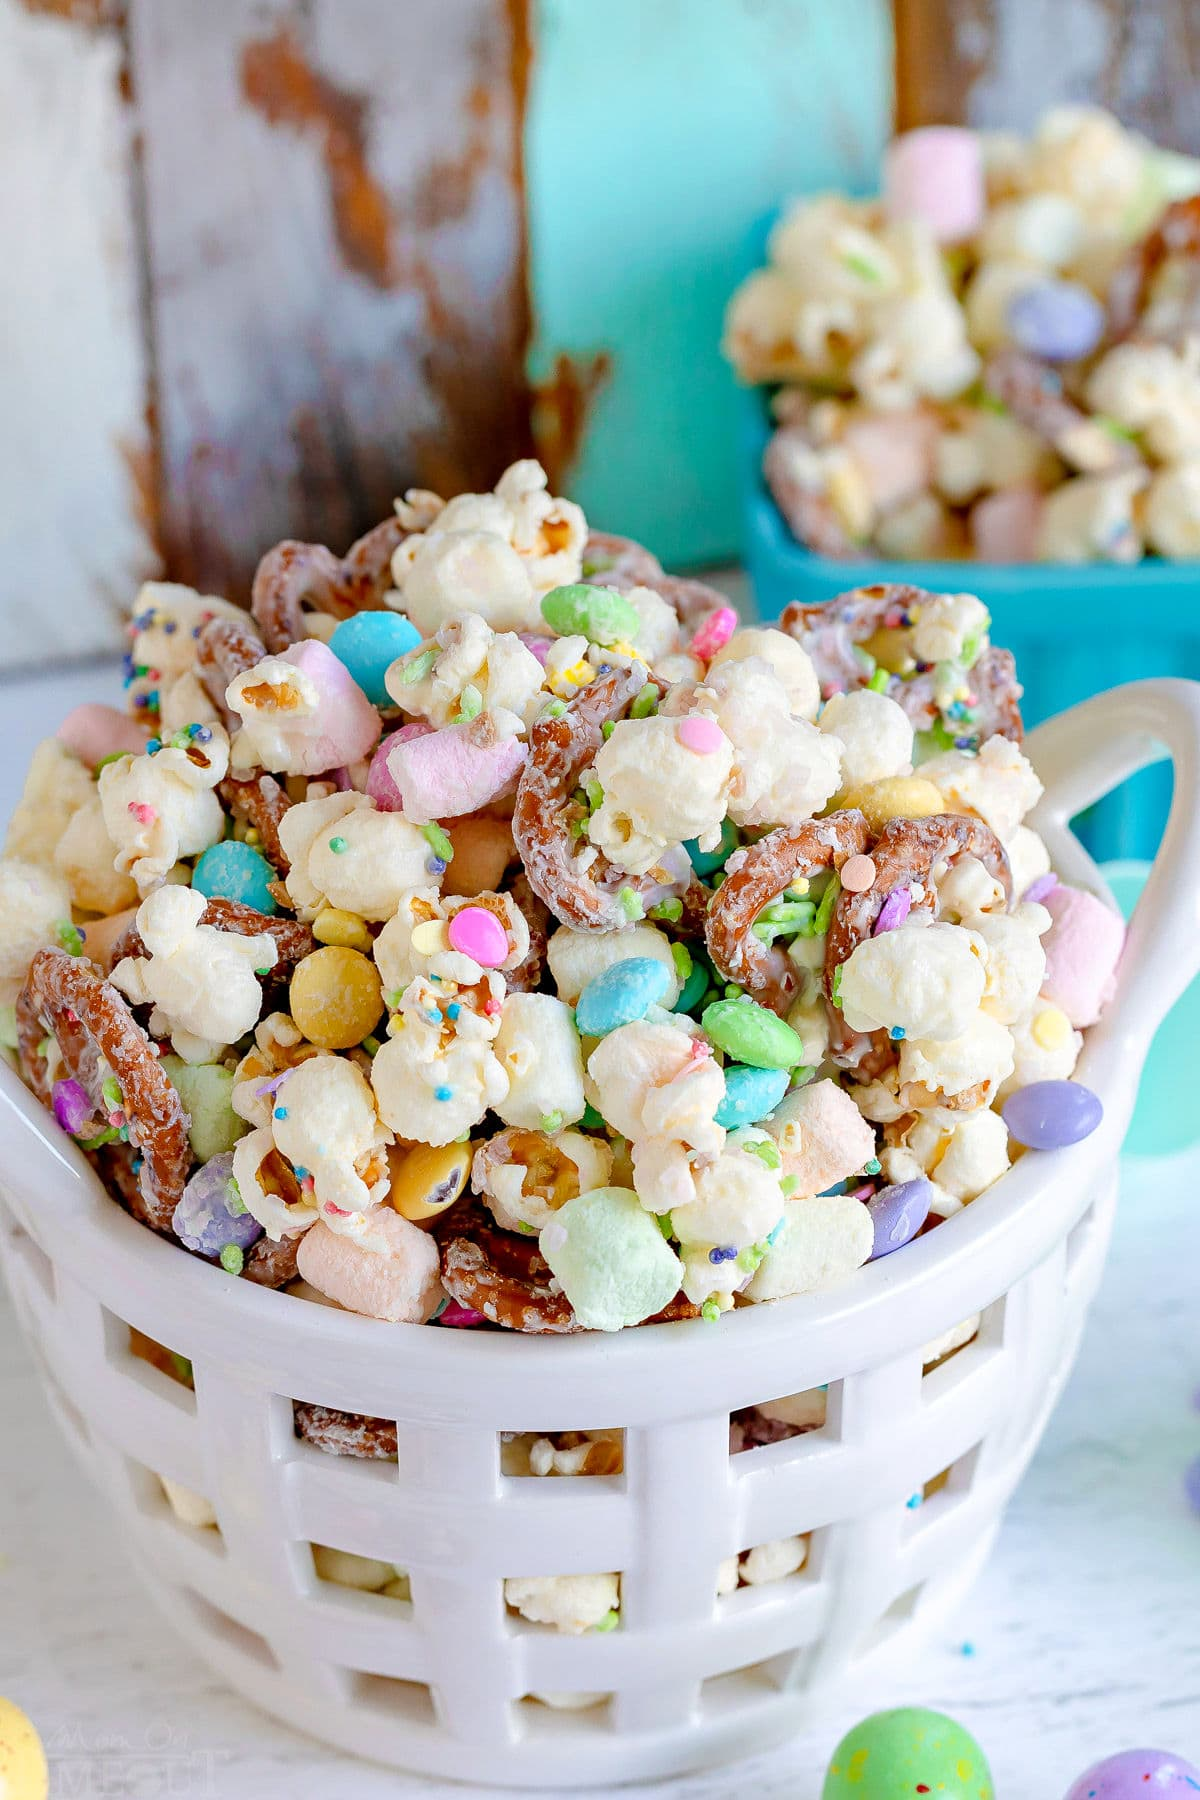 bunny bait snack mix with popcorn and pretzels in a white ceramic basket.